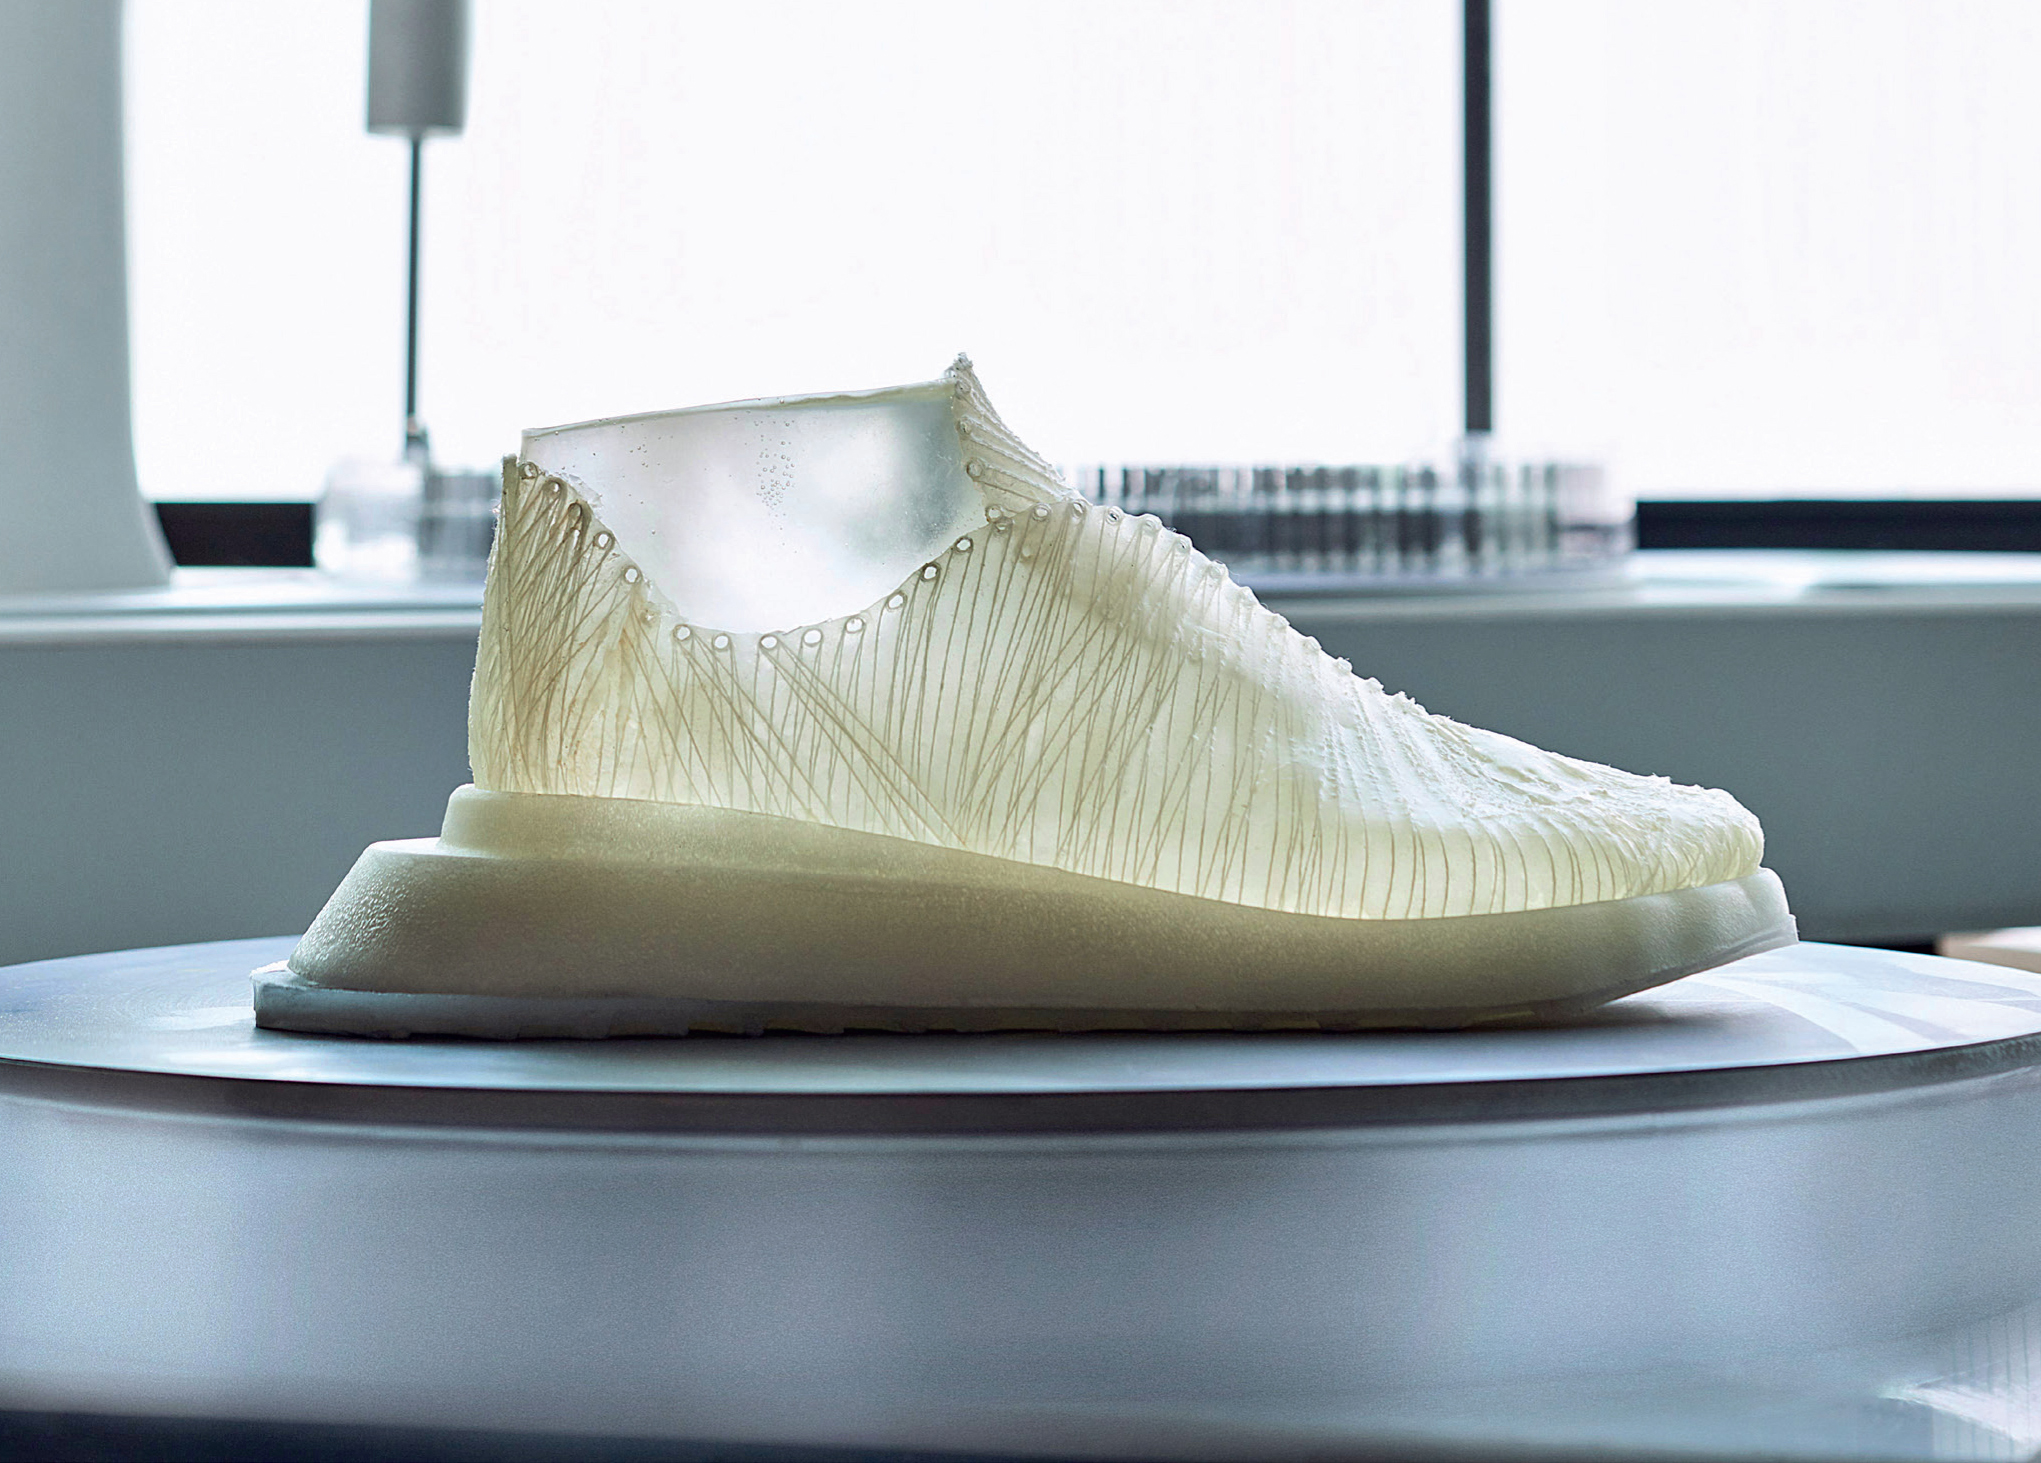 This is Grown:  Material Driven Design  within the Sportswear  Industry and  Bio-fabricated Futures